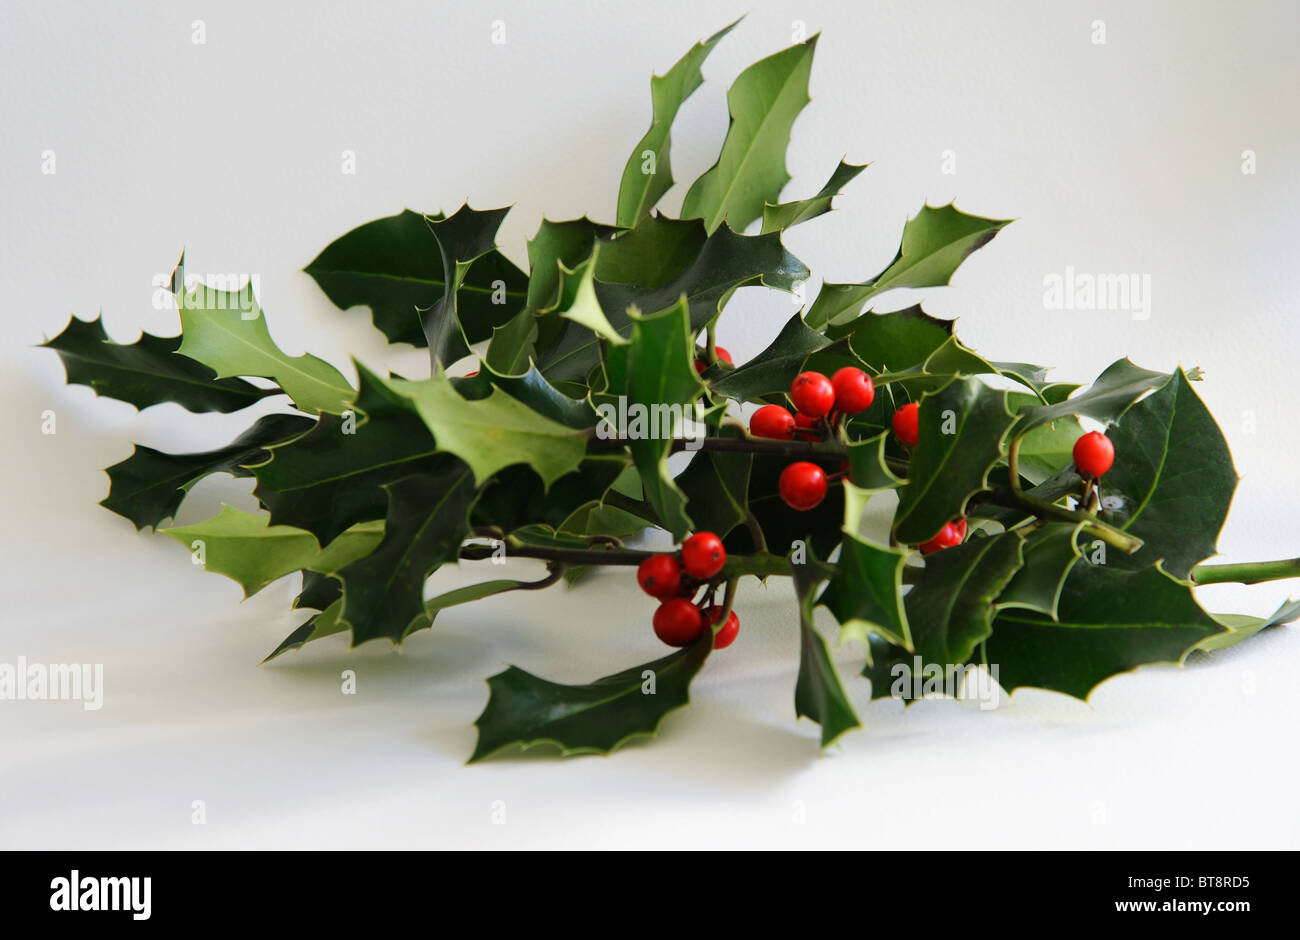 Holly sprigs with berries - Stock Image